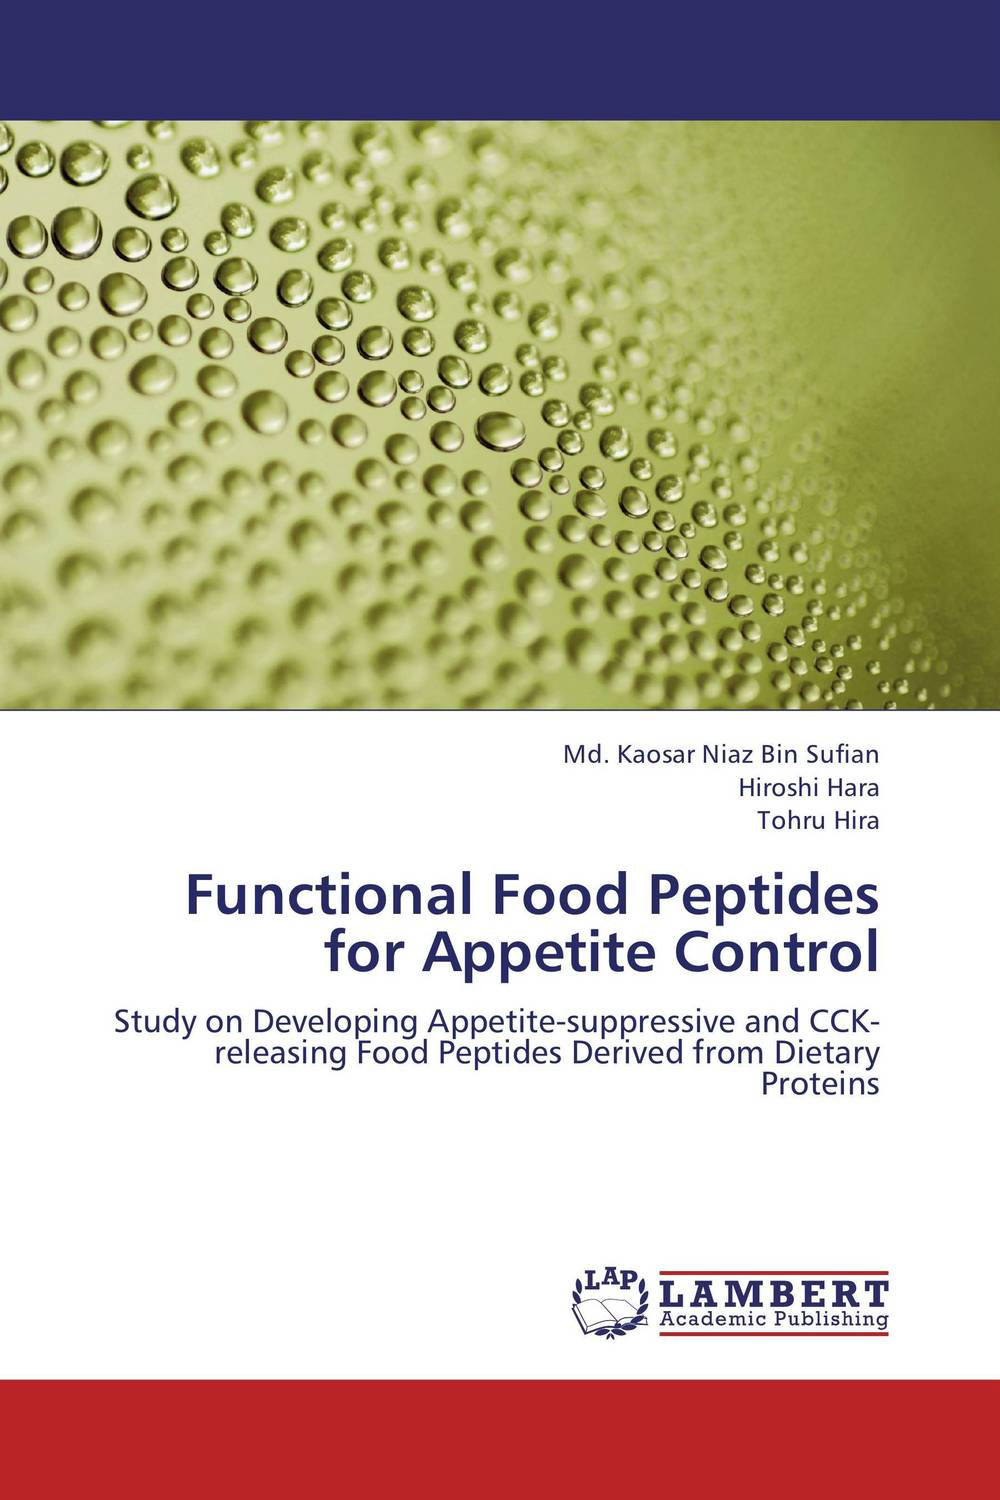 Functional Food Peptides for Appetite Control